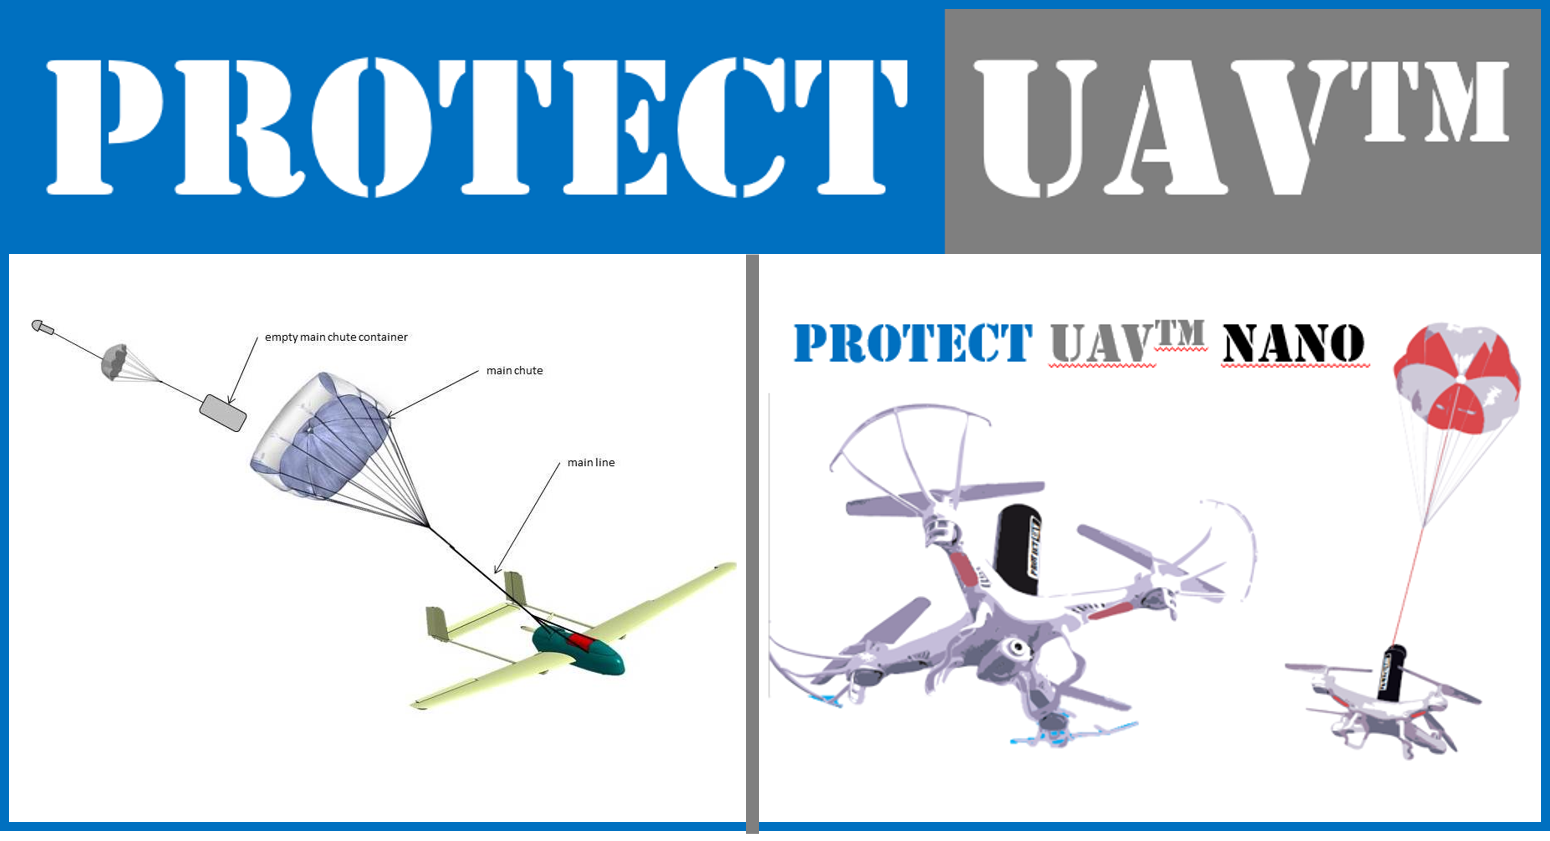 protectUAV marketing picture